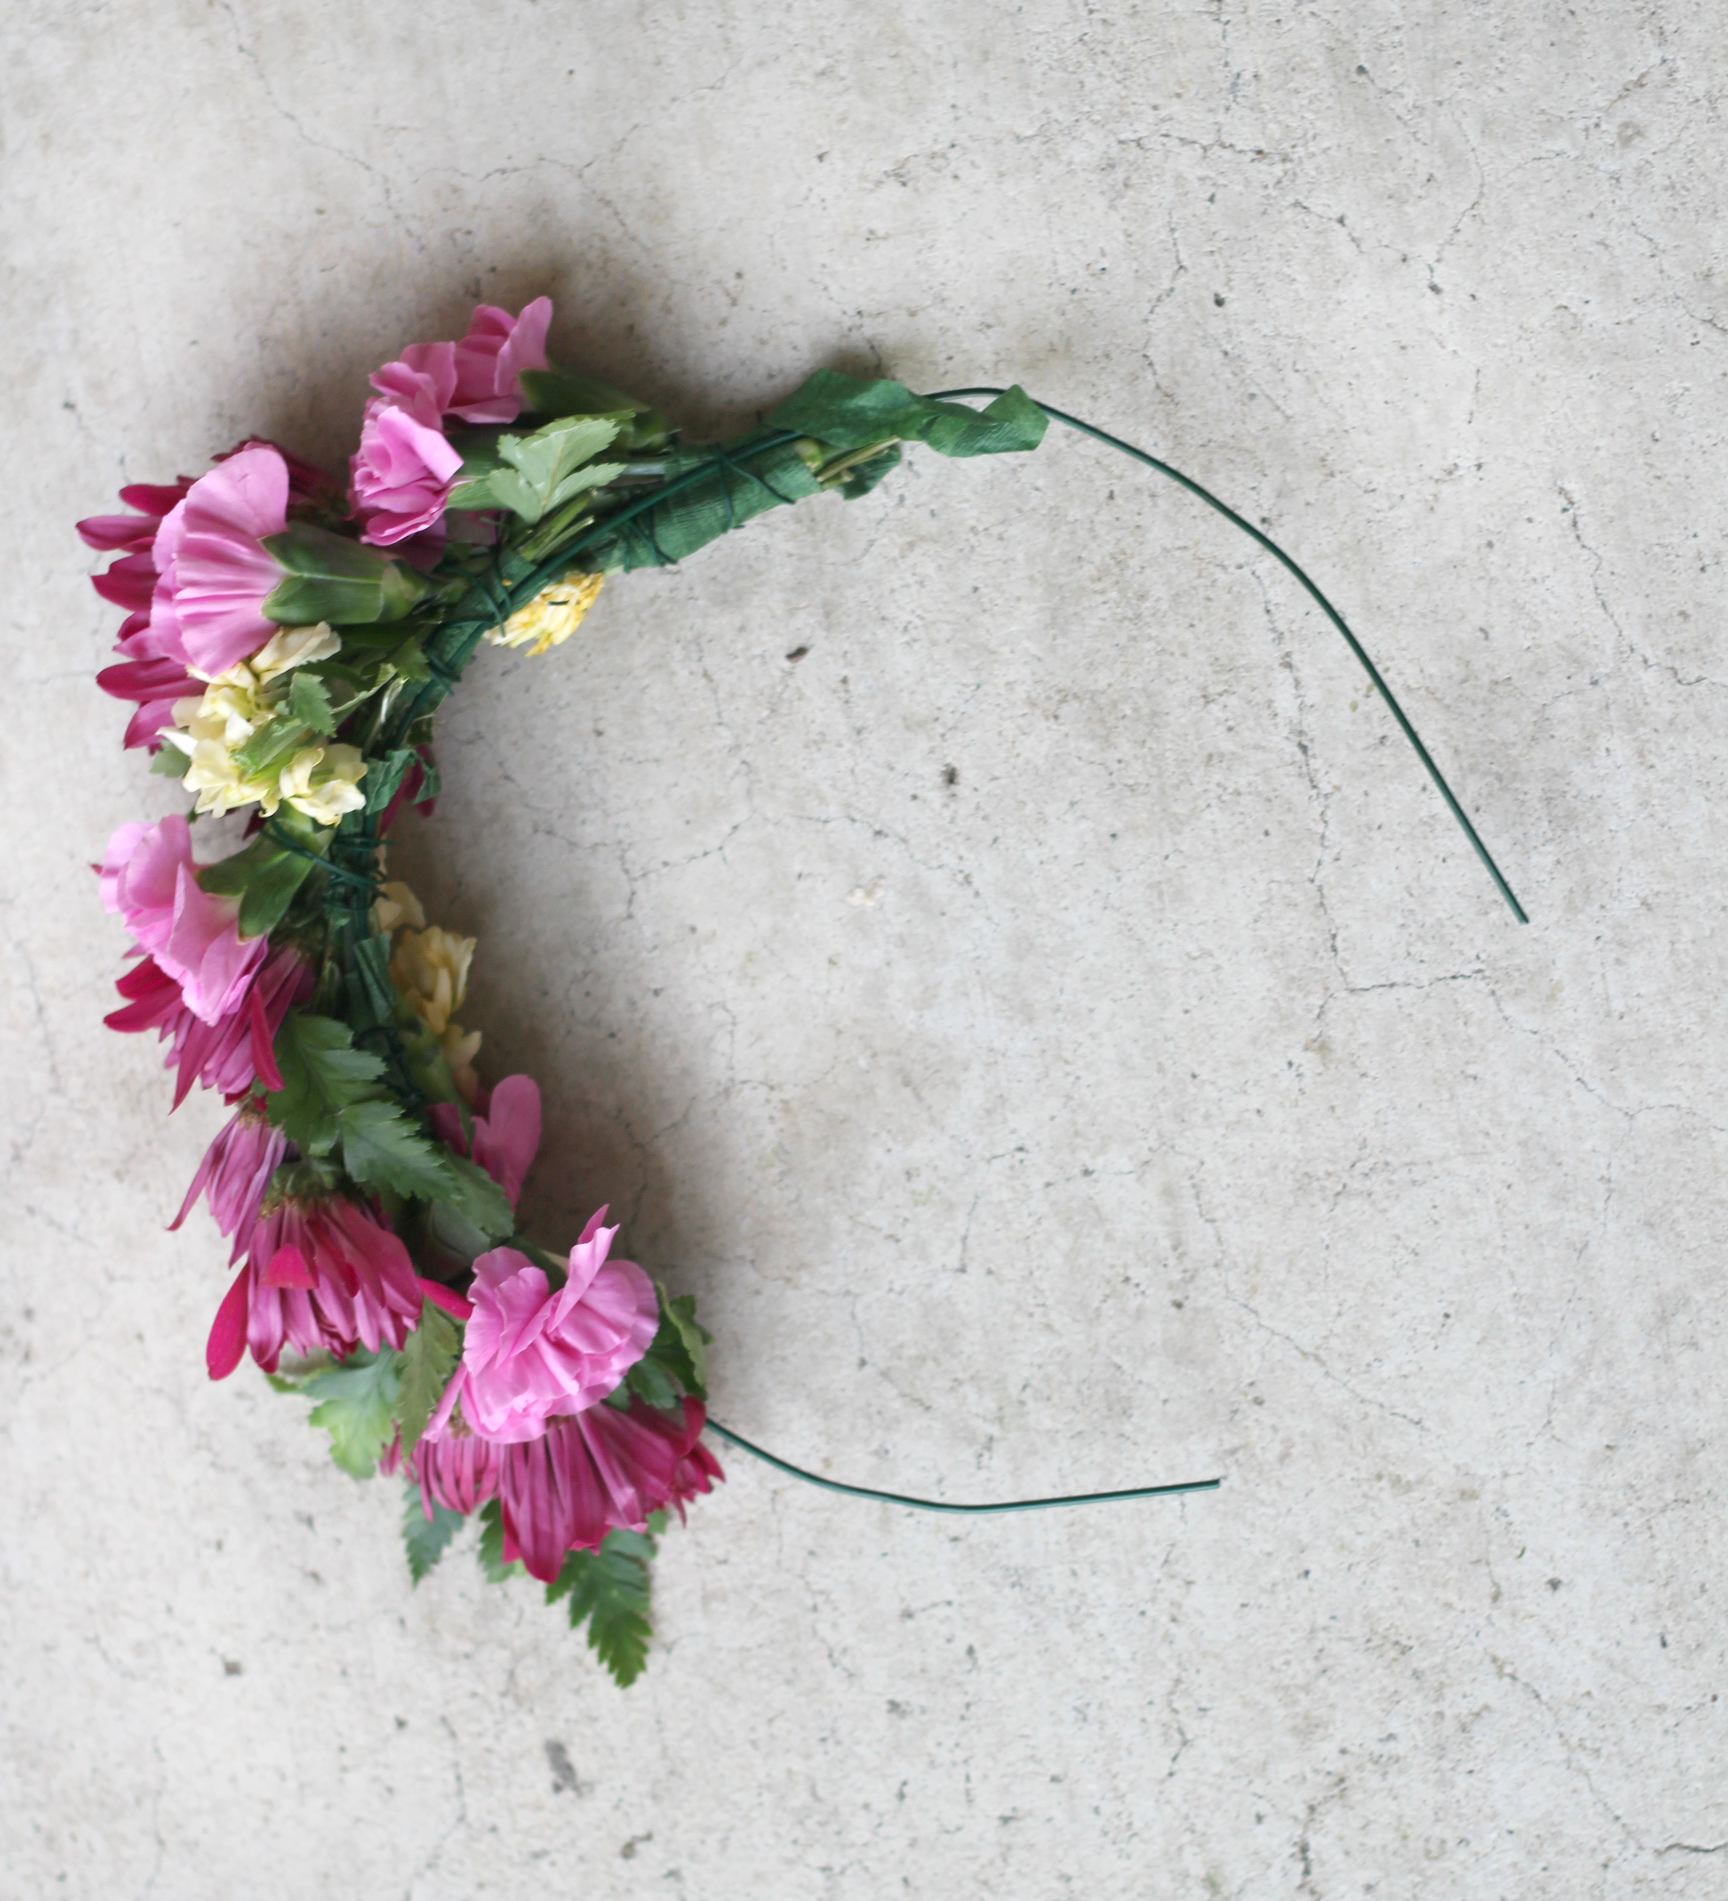 I made my own flower crown from this    tutorial    I saw on Pinterest. I got all my supplies from Michael's and fresh carnations from my local grocery store. It seemed pretty easy but next time I won't get the thick wire because it wasn't as easy to hide the pointy ends. However, I'll be making myself this crown a lot more in the future, loved it.